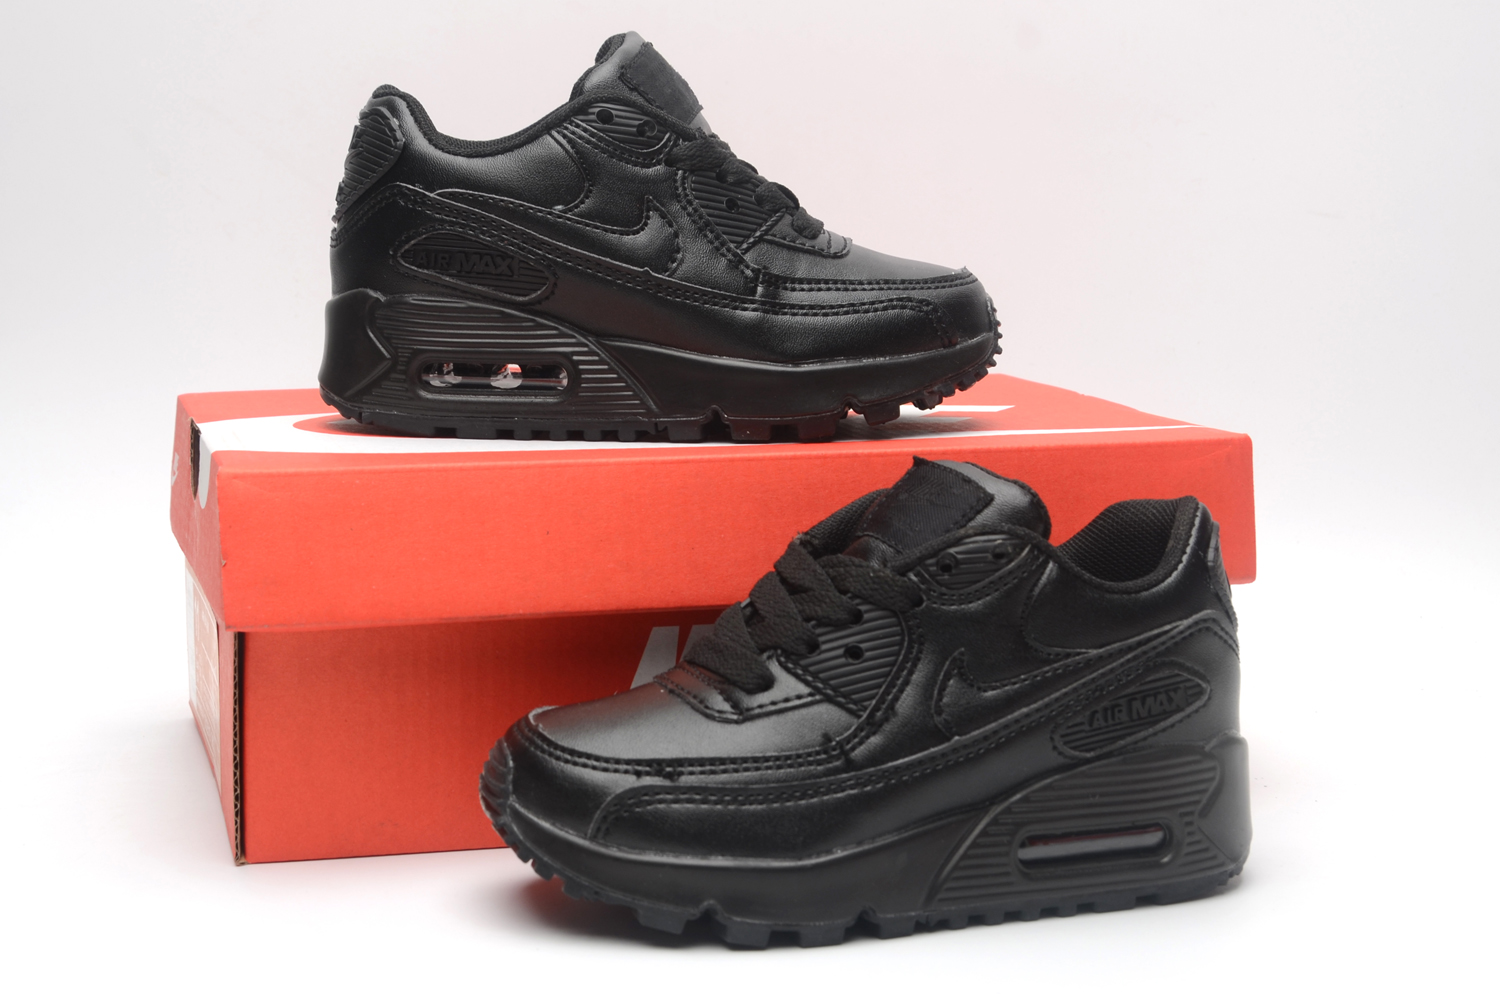 Women's Running weapon Air Max 90 Shoes 030